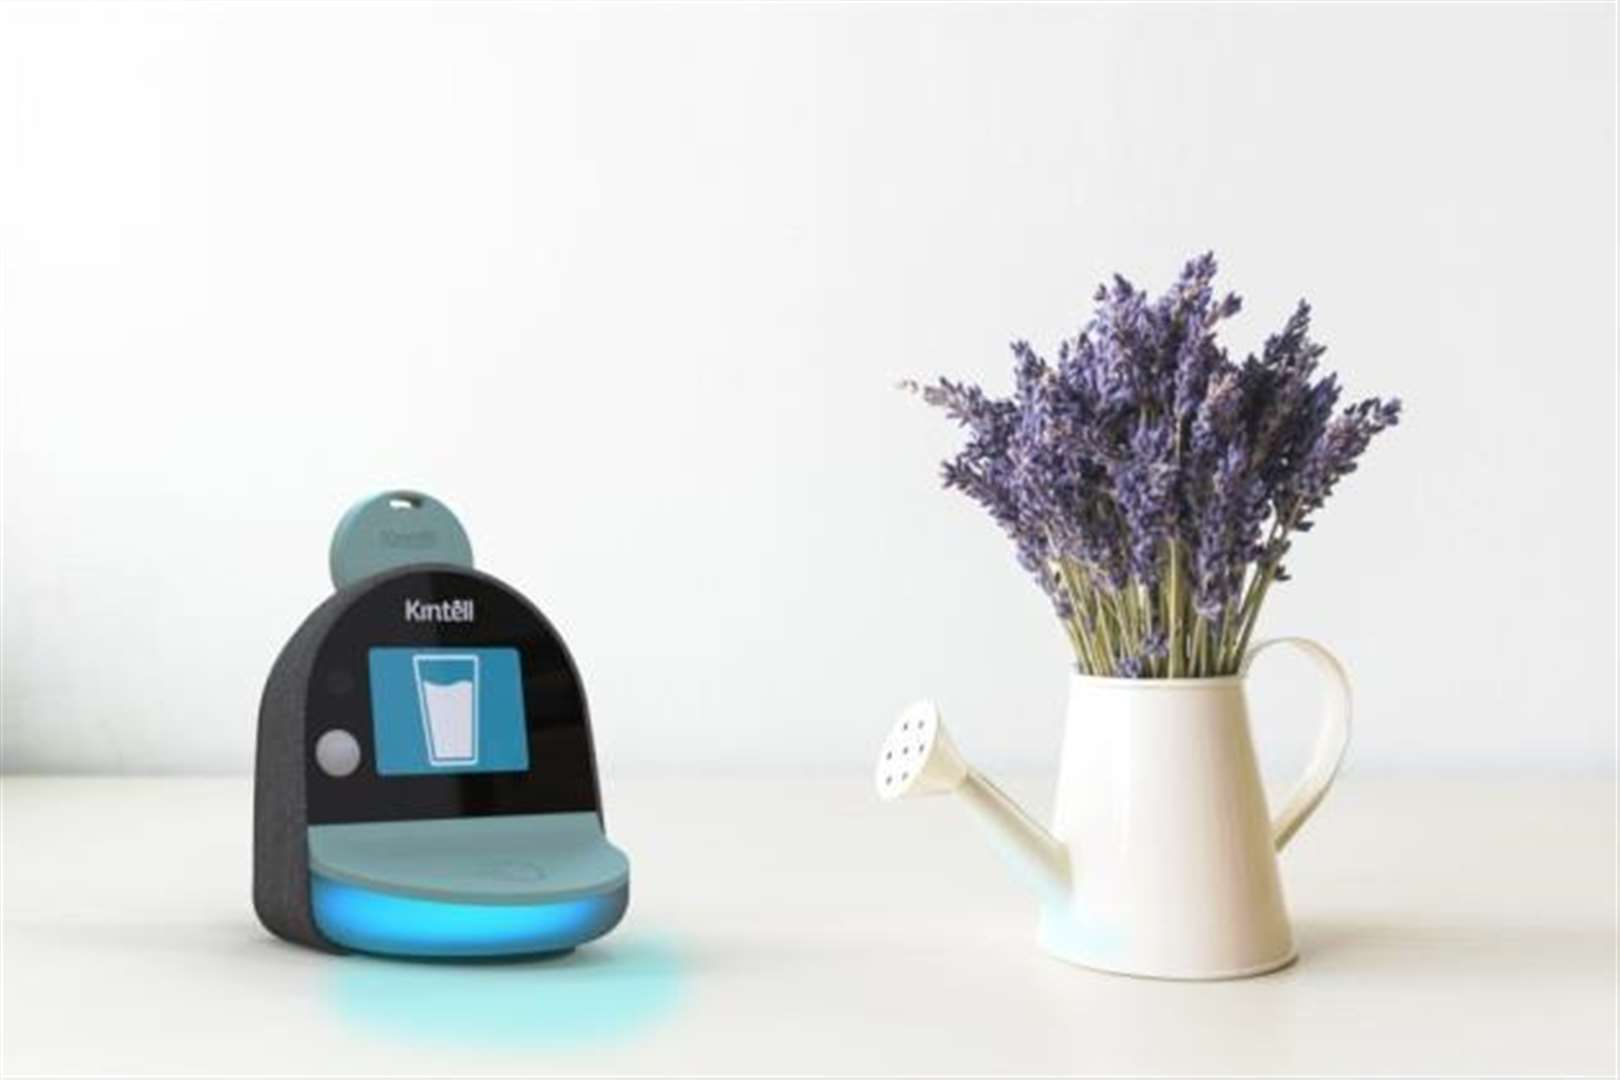 Kintell lines up £199 smart homecare system